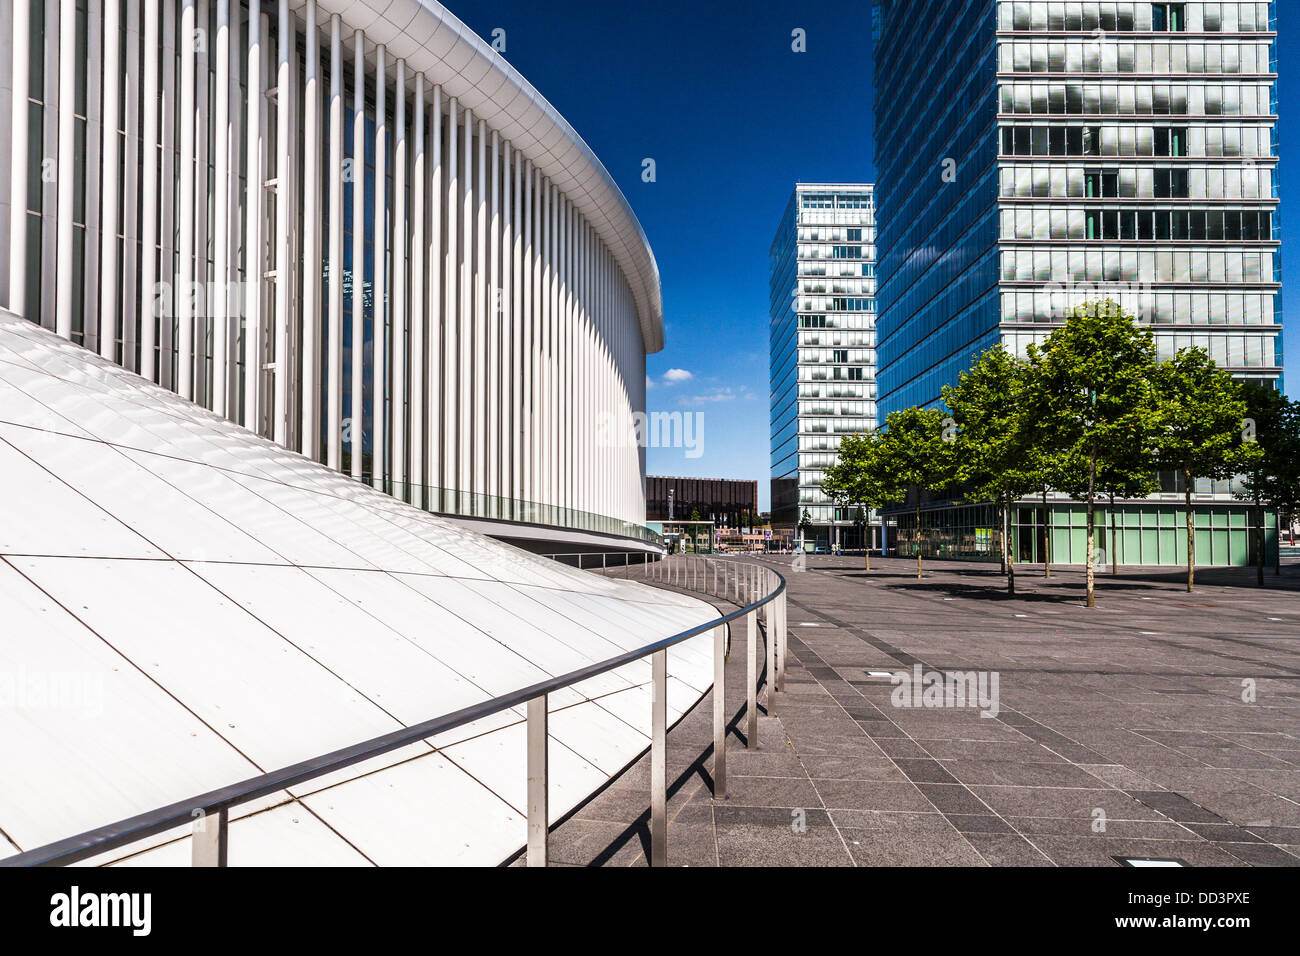 Part of the Philharmonie concert hall and the towers of the European Parliament buildings at Kirchberg in Luxembourg - Stock Image